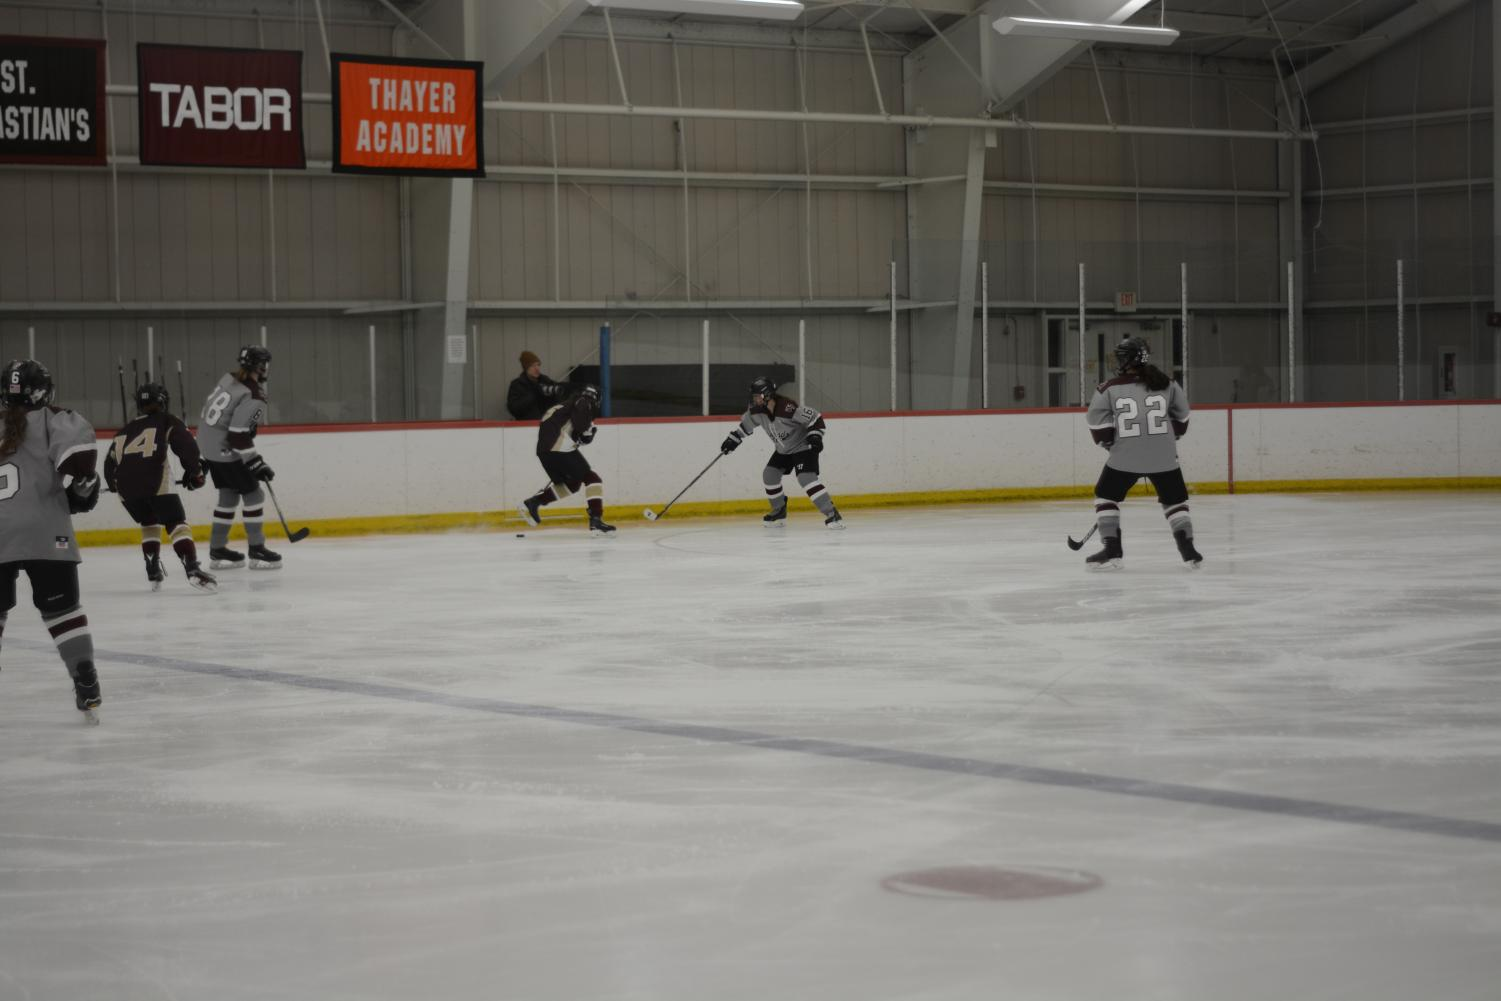 Westford+Academy+hustles+back+to+defend+their+side+of+the+ice.